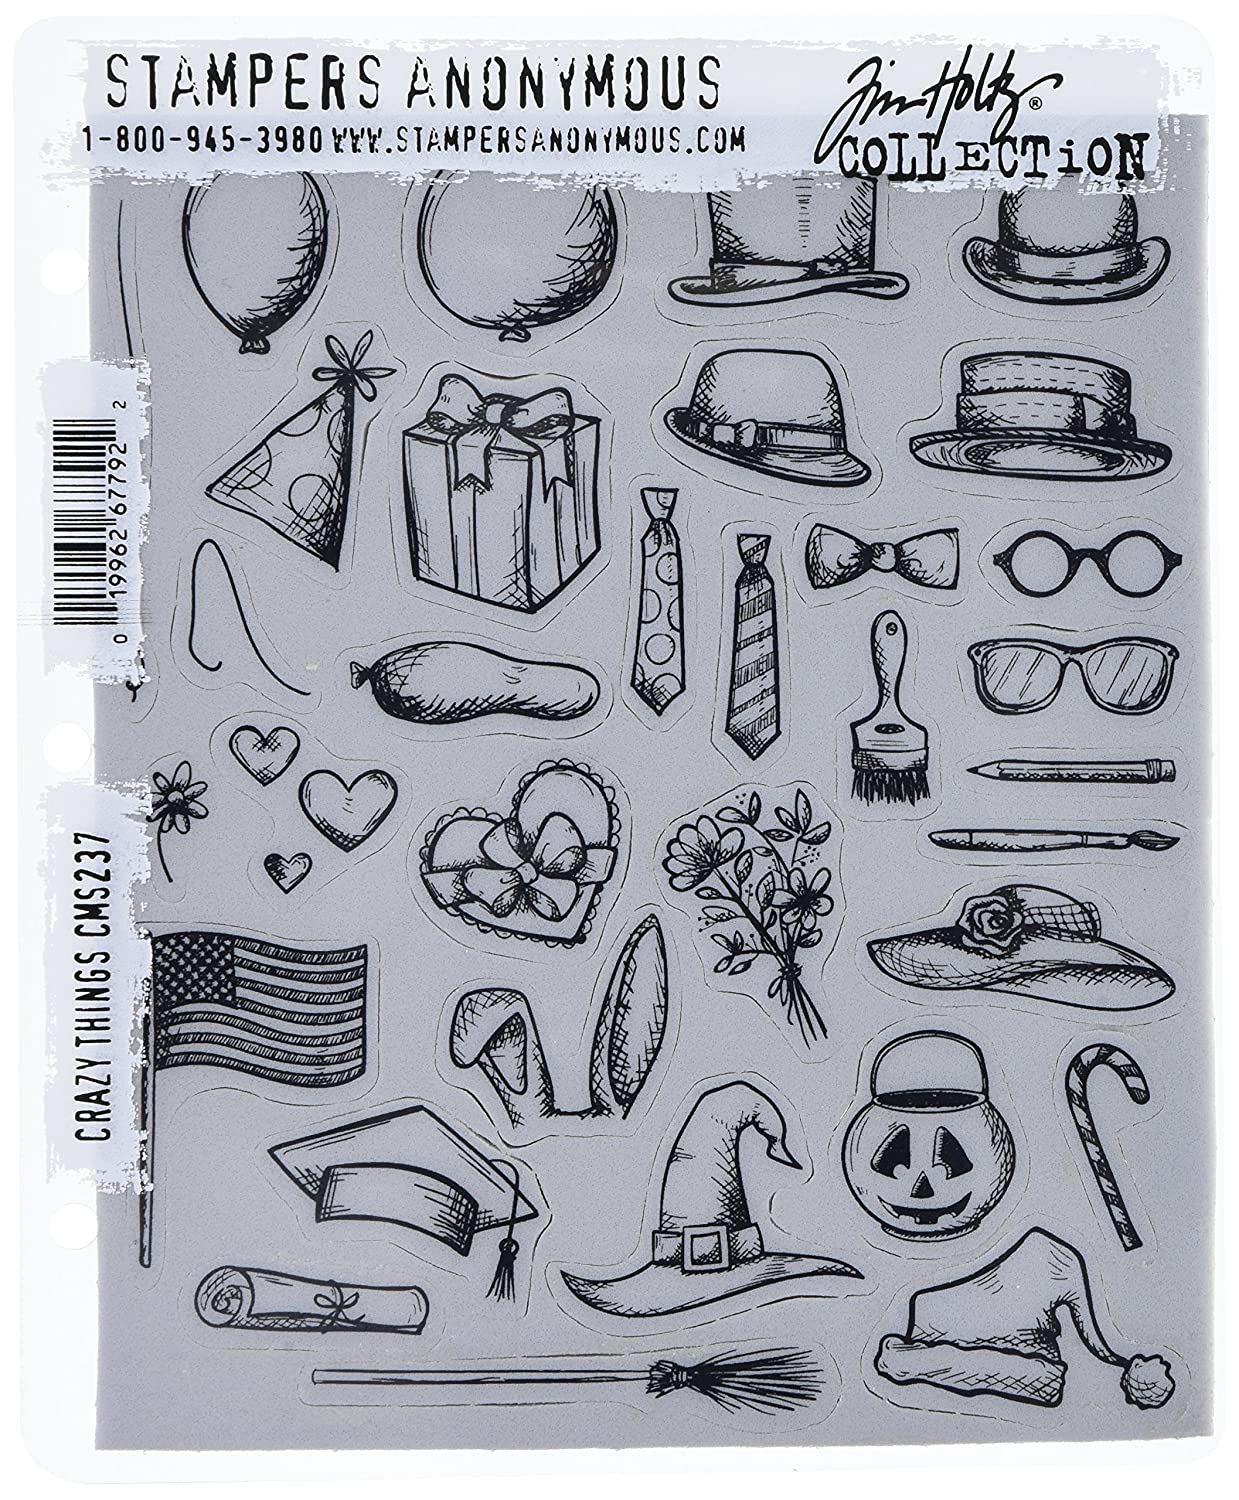 Stampers Anonymous Tim Holtz Cling Rubber Stamp Set, 7